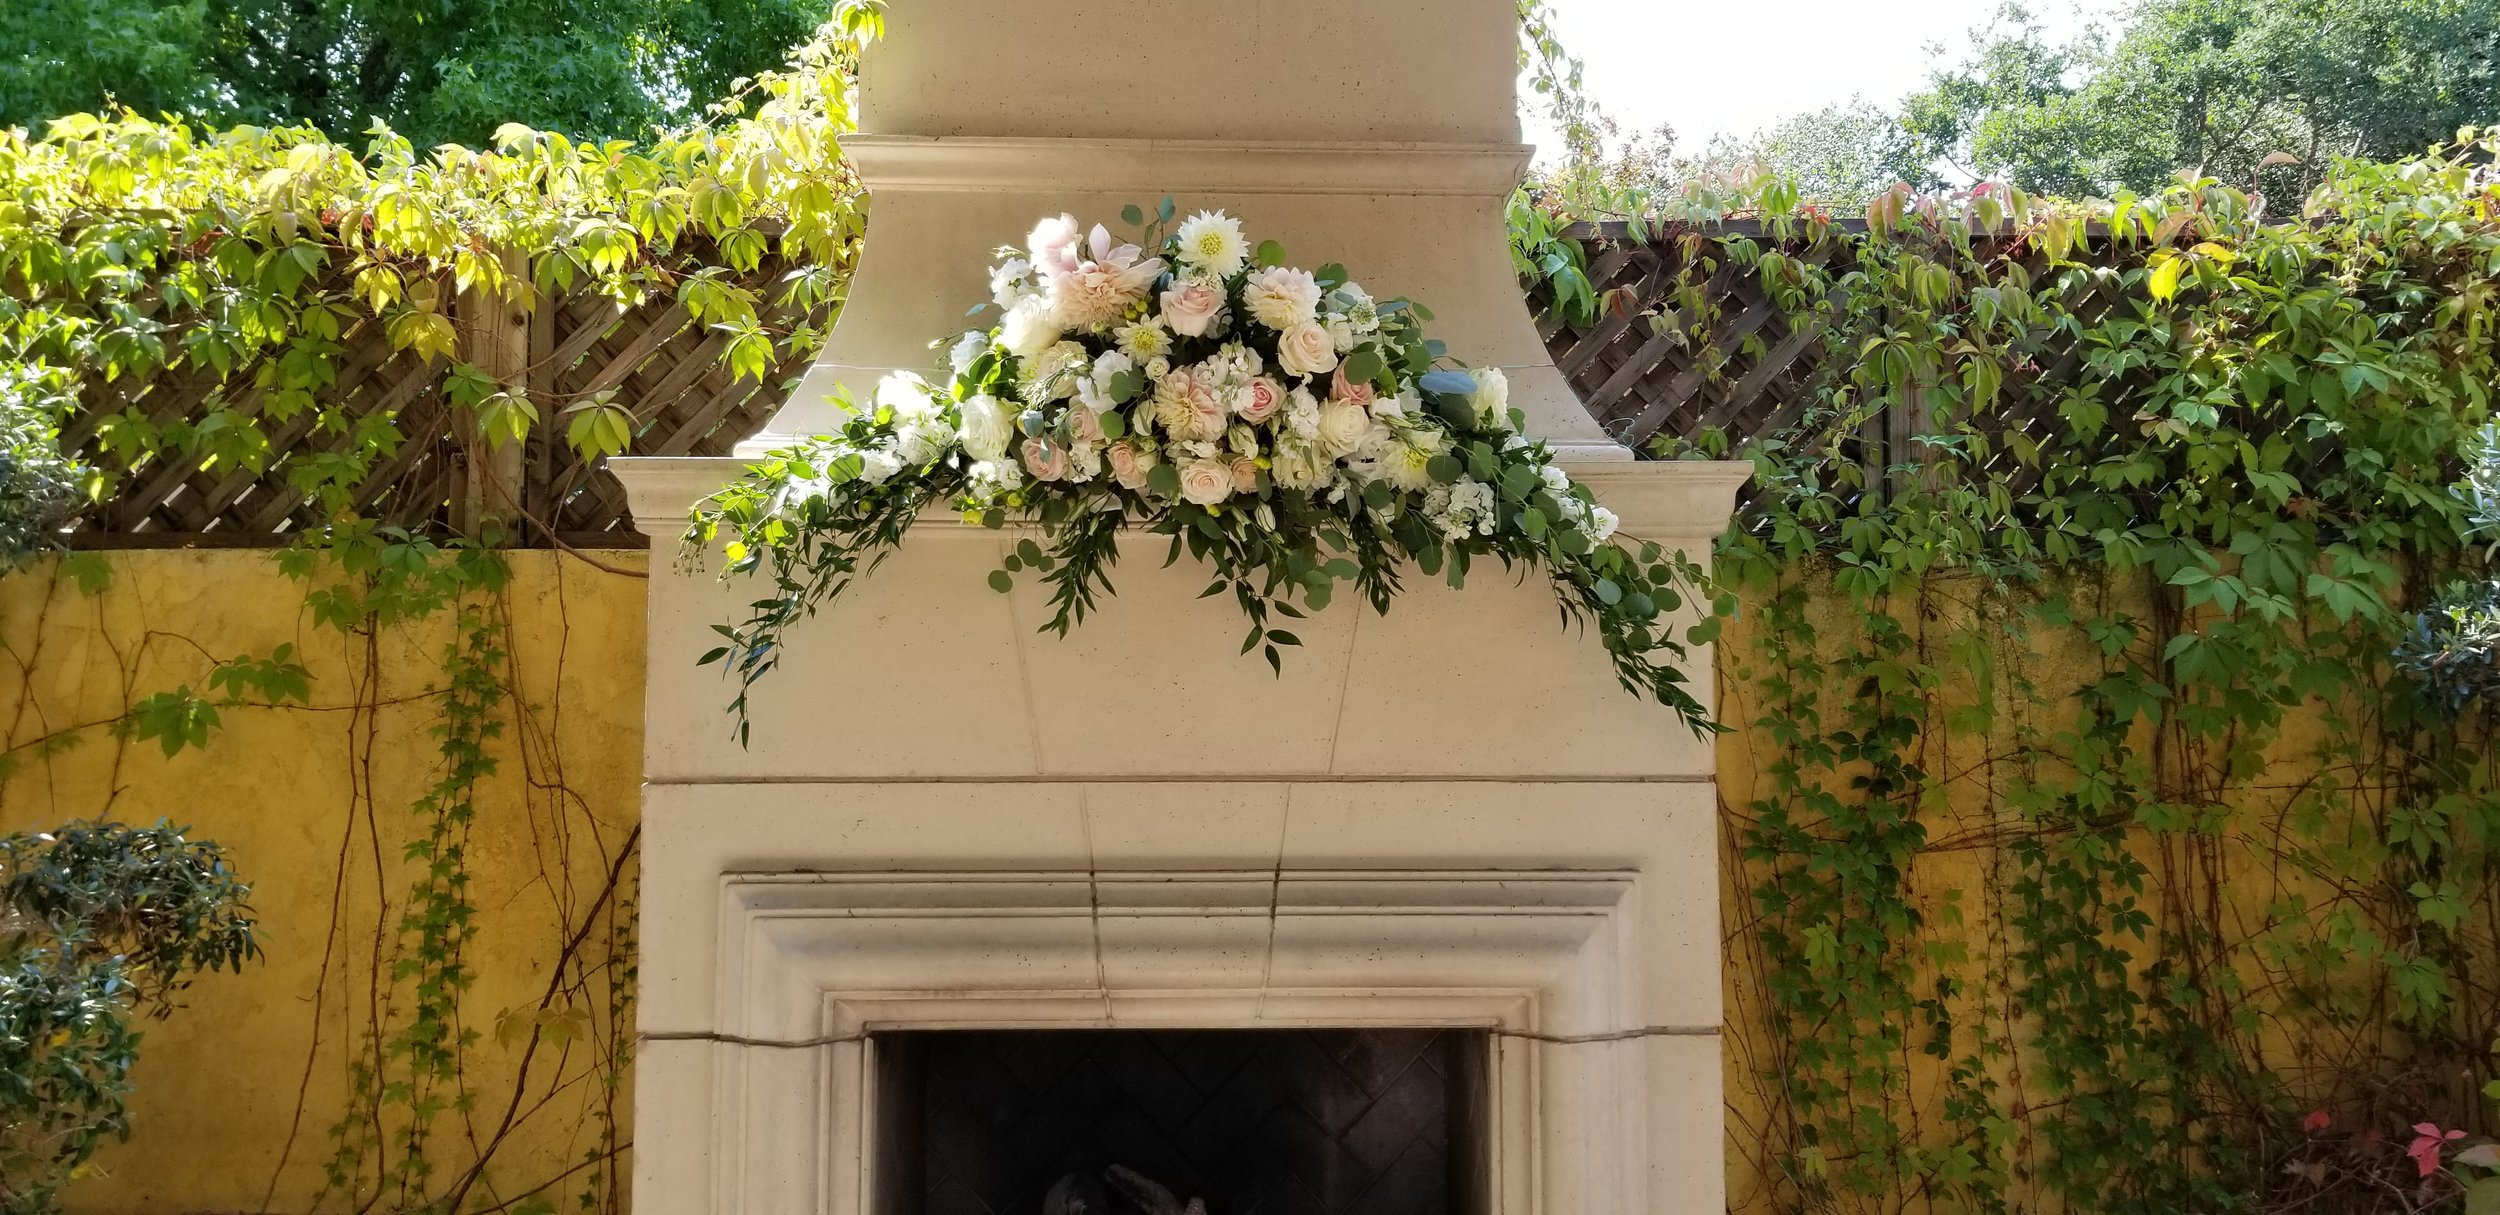 Outdoor fireplace wedding ceremony at Depot Hotel in Sonoma. Floral display on mantle includes shades of white and blush flowers and flowing eucalyptus greens